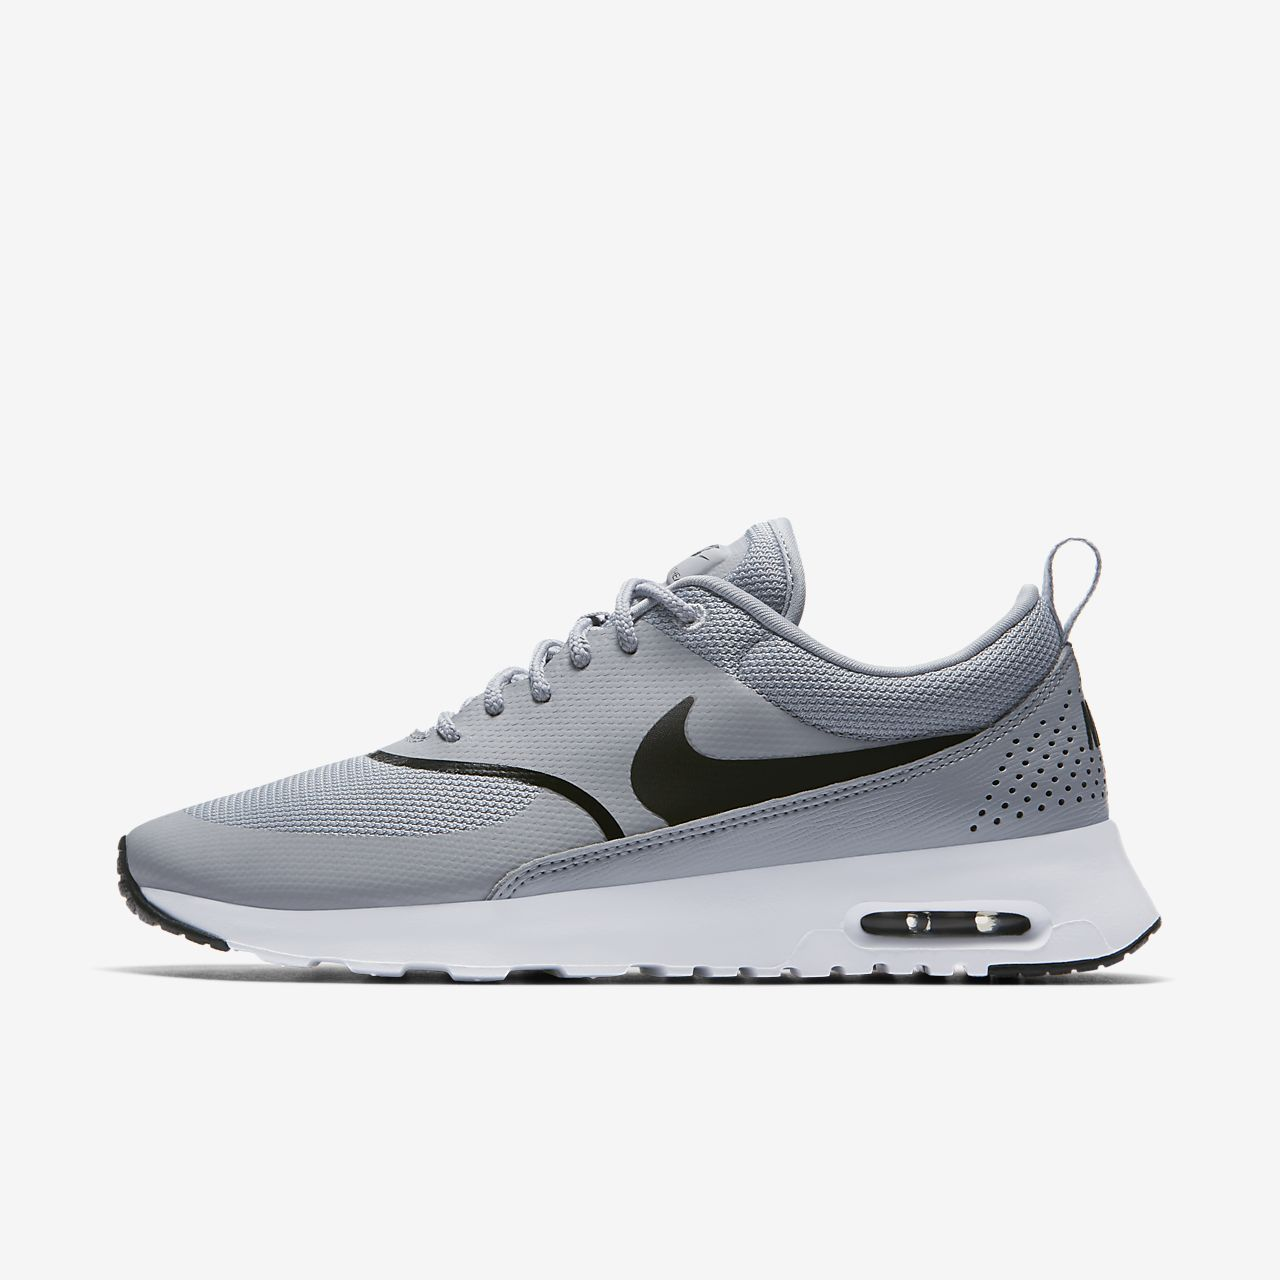 sports shoes 44200 3993b ... Chaussure Nike Air Max Thea pour Femme